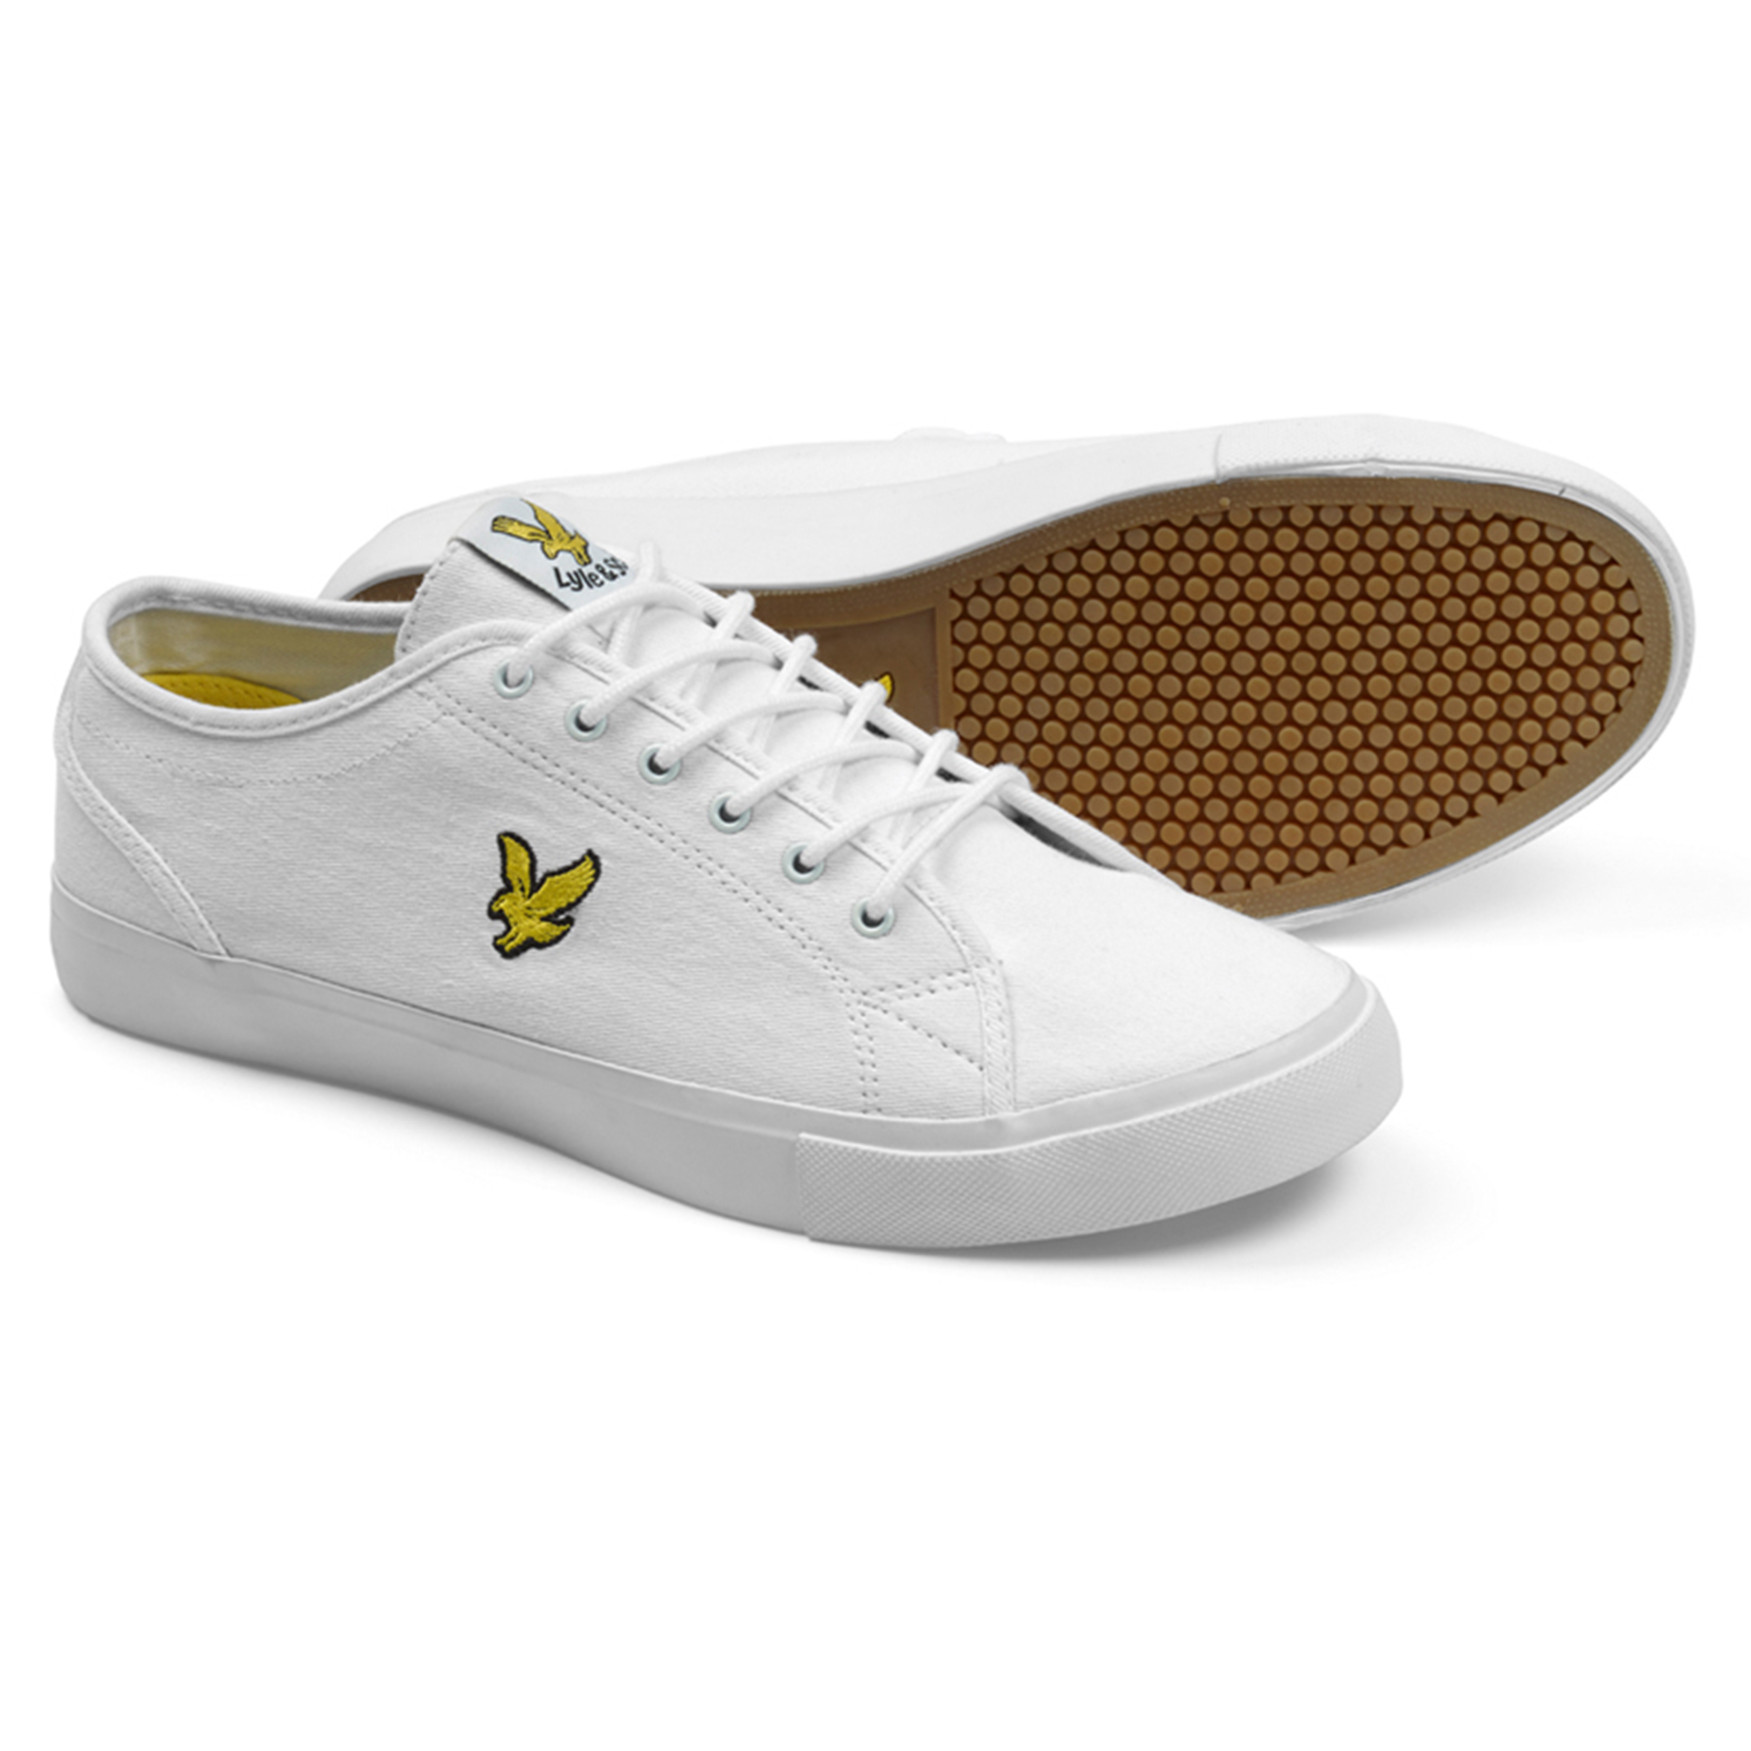 be7a07fc2a59 Lyle   Scott Men s Teviot Twill Low Canvas Shoes Shoes White